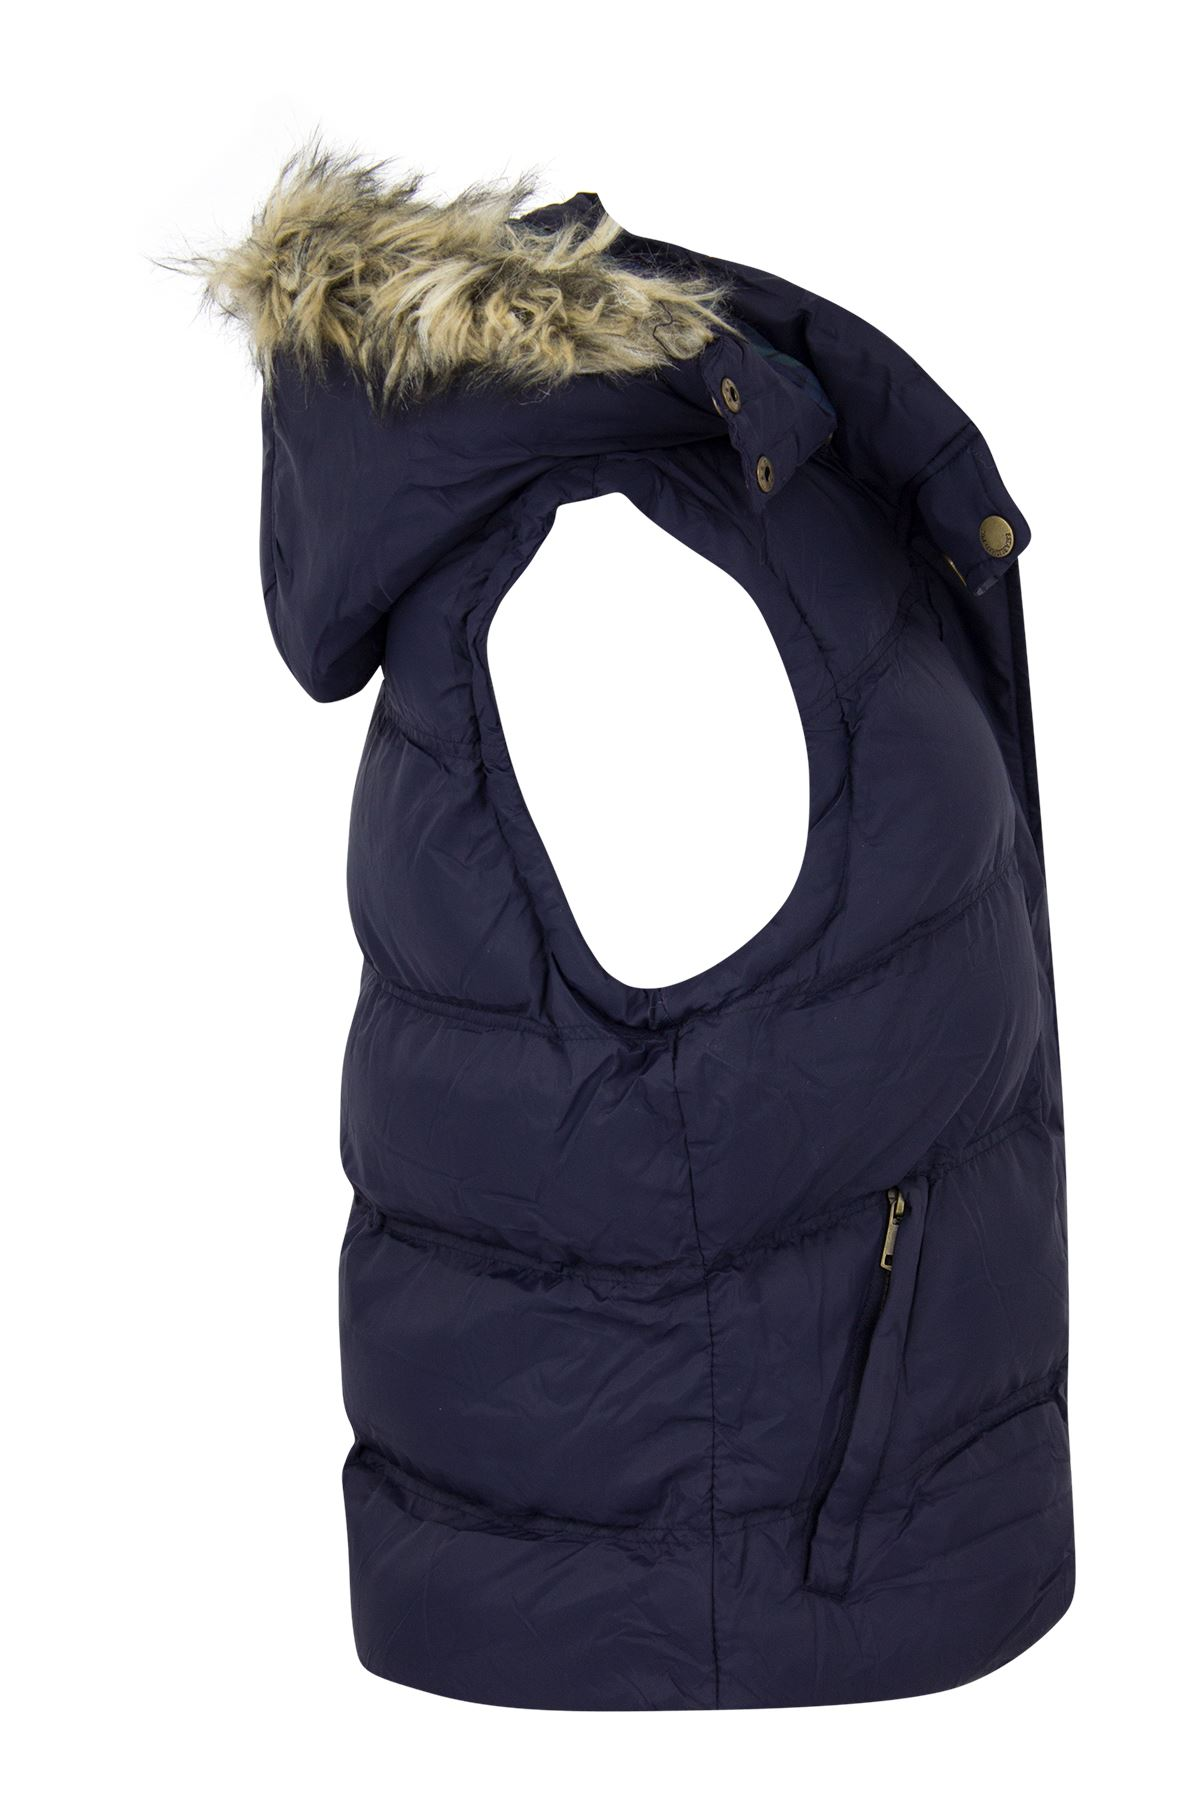 New-Womens-Padded-Sleeveless-Gilet-Faux-Fur-Hooded-Puffer-Body-Warmer-Jacket thumbnail 6